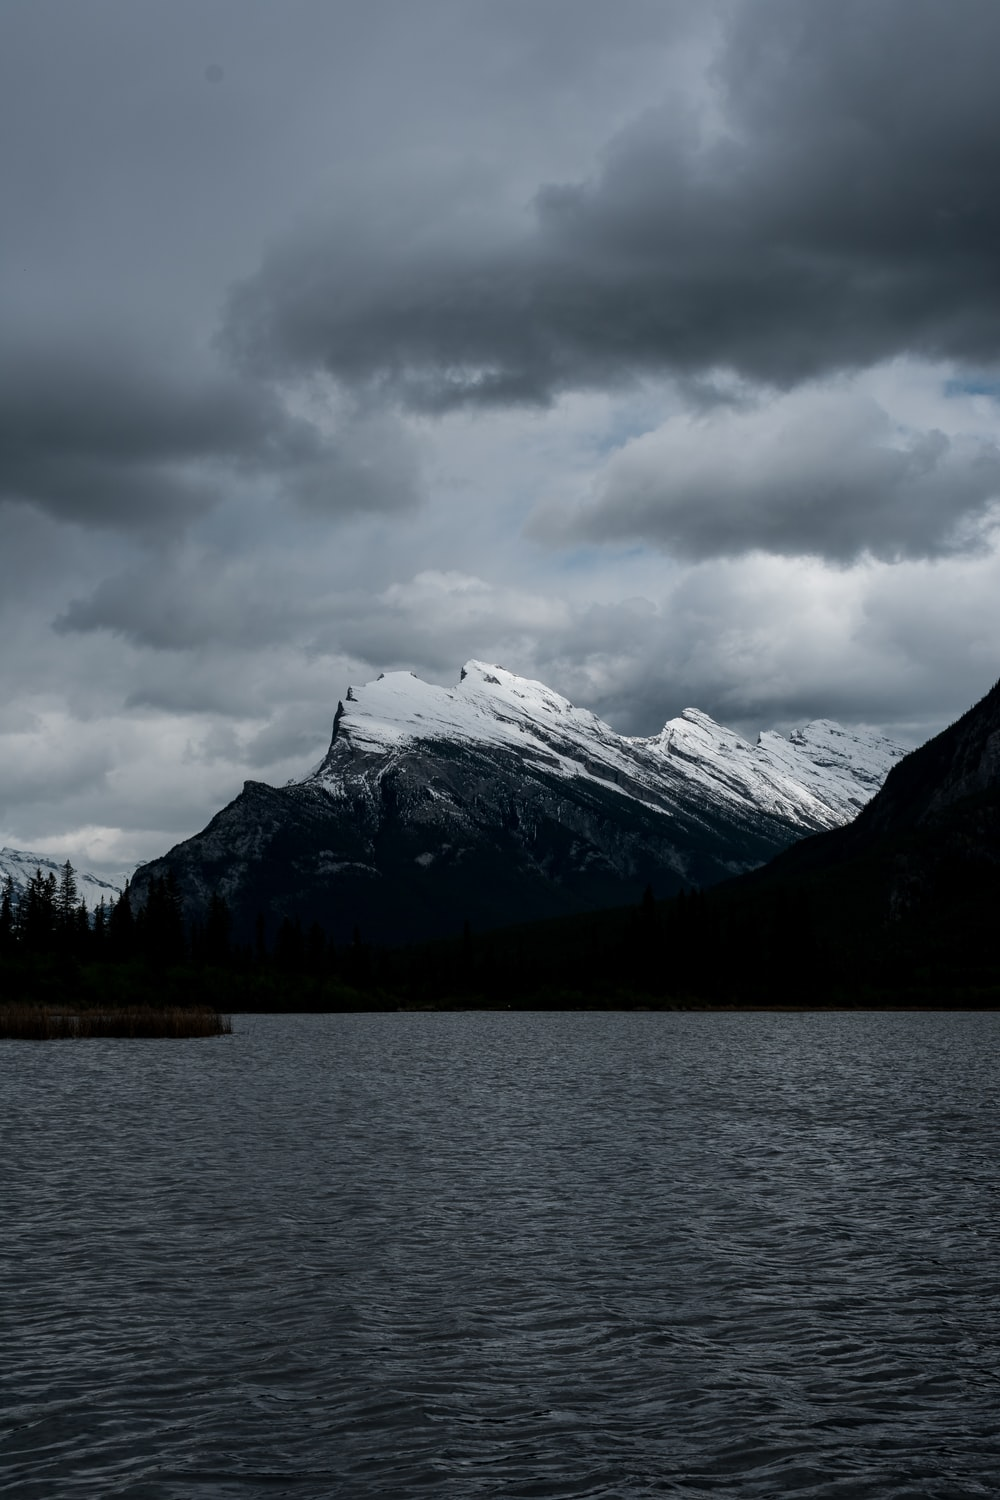 snow covered mountain near body of water under cloudy sky during daytime